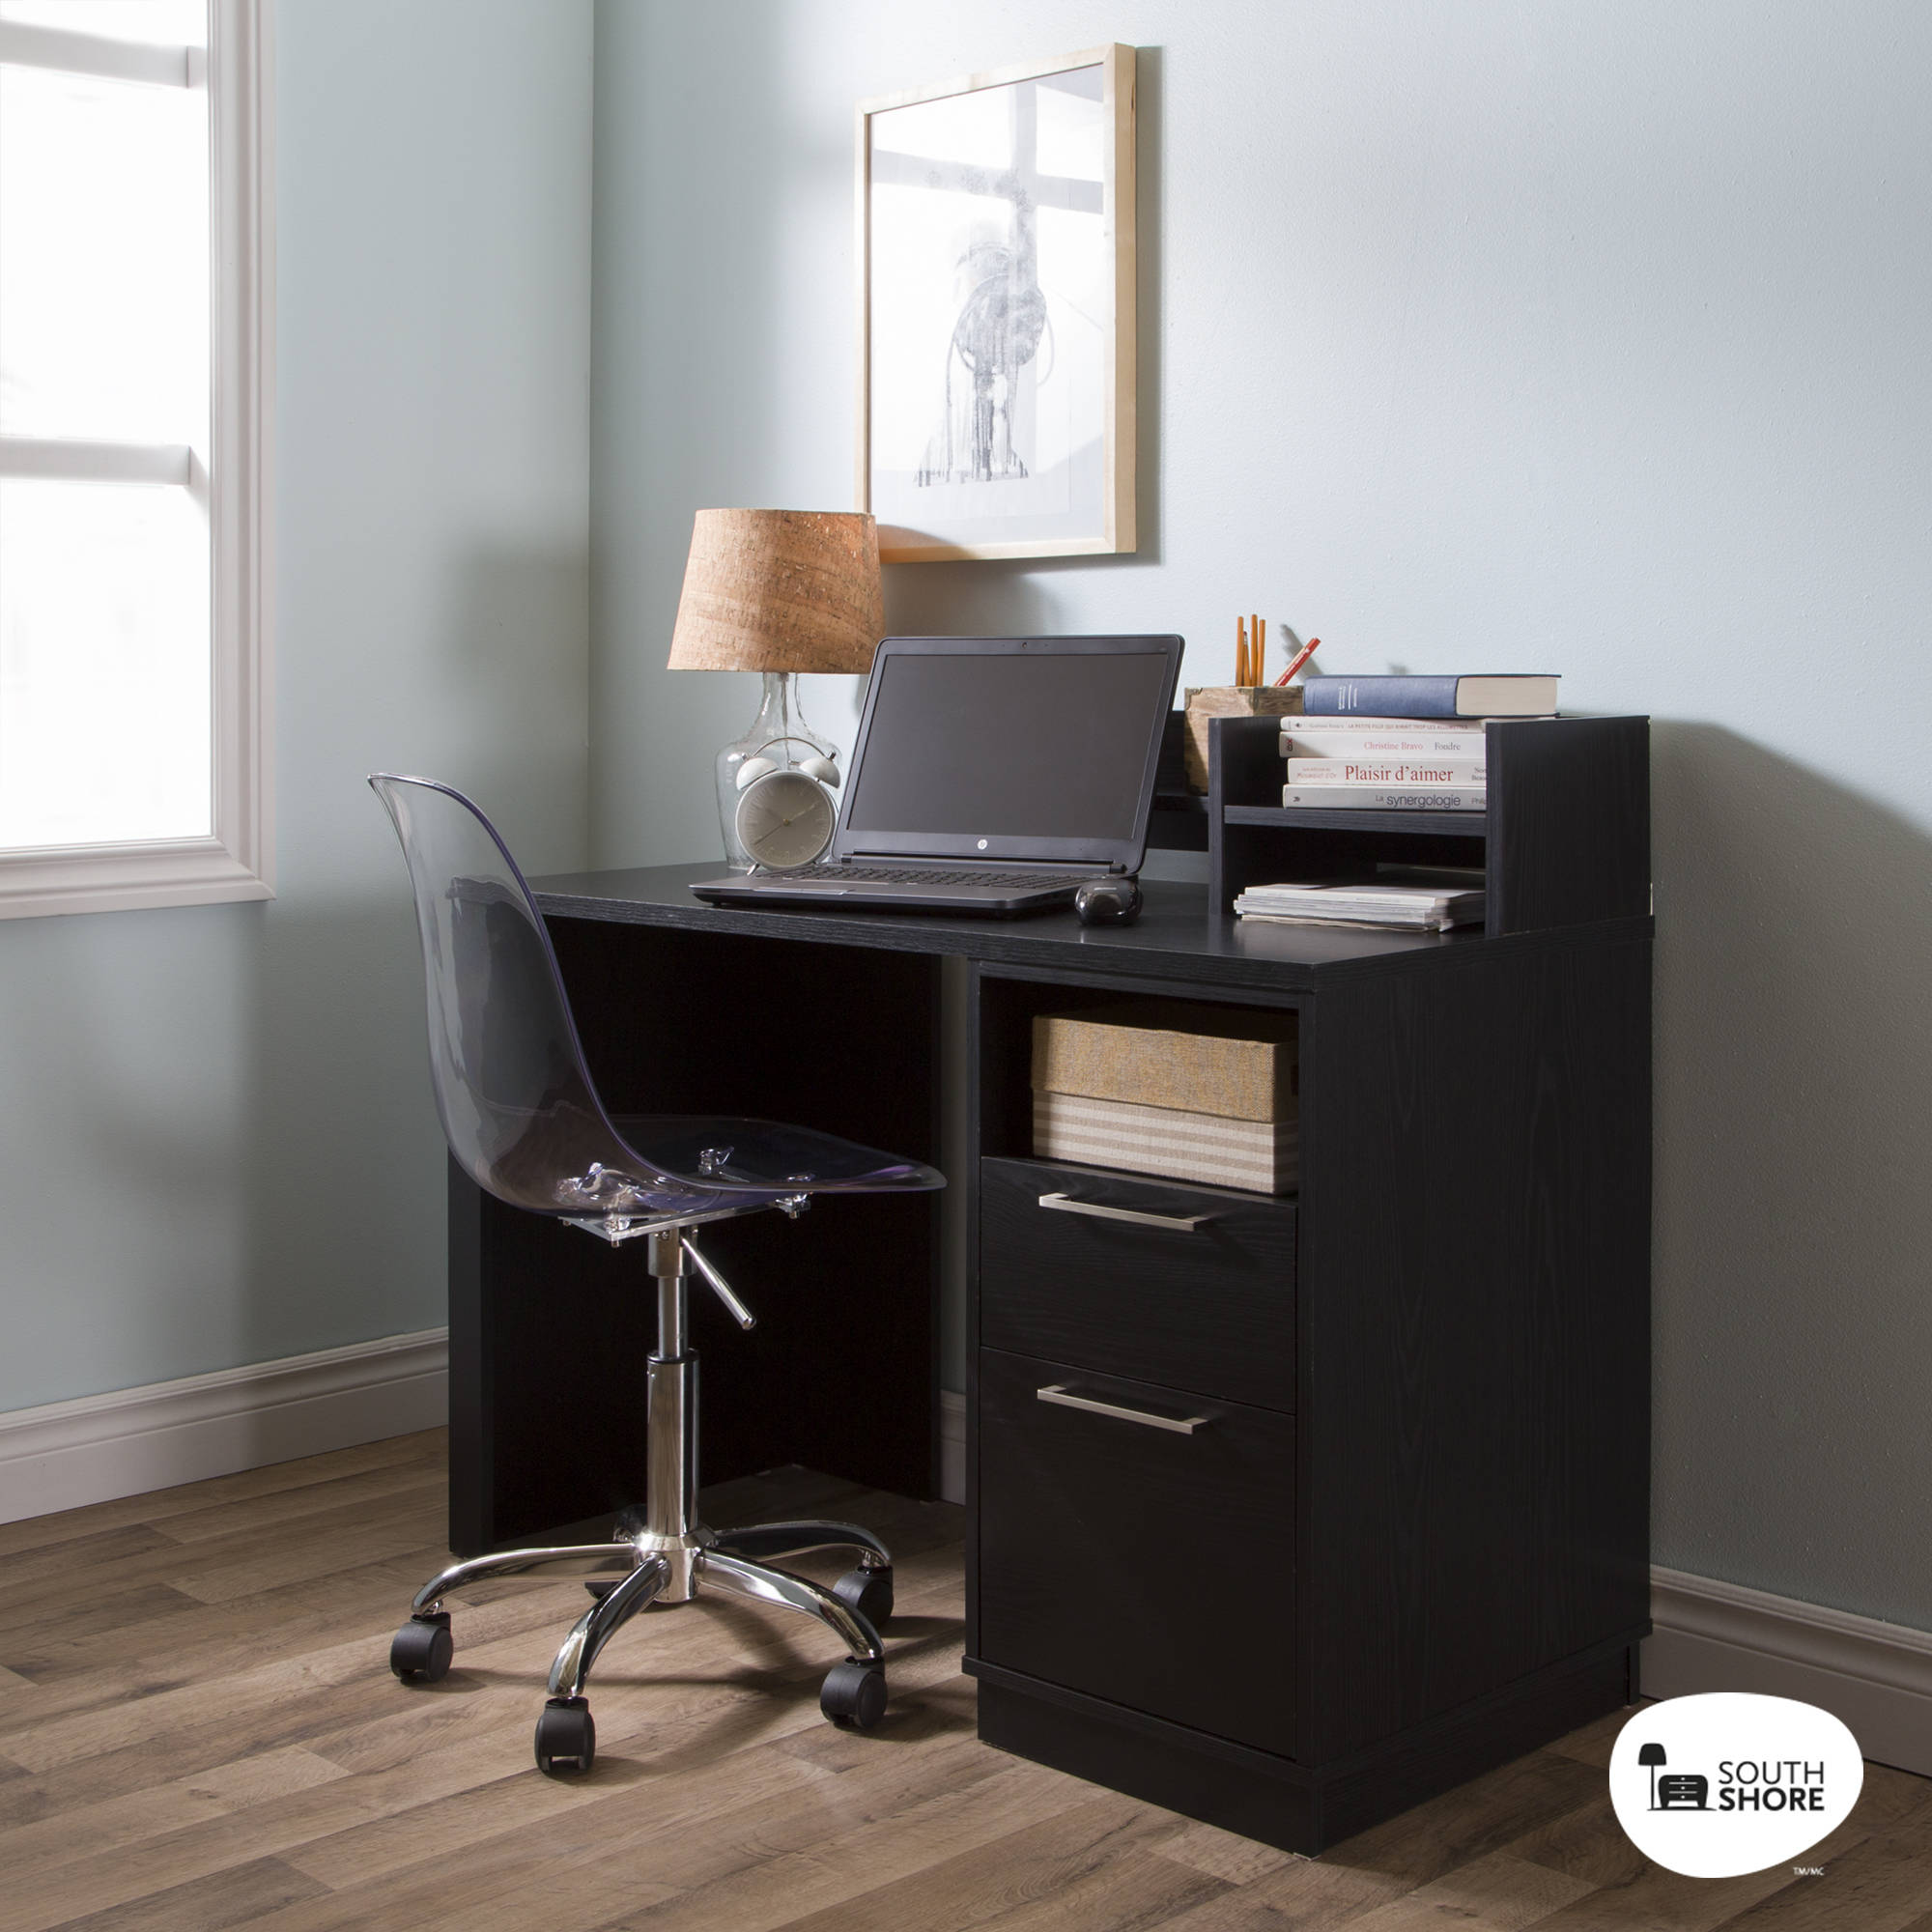 Office Desk With Drawers Black Oak Computer Study Table Laptop Home New